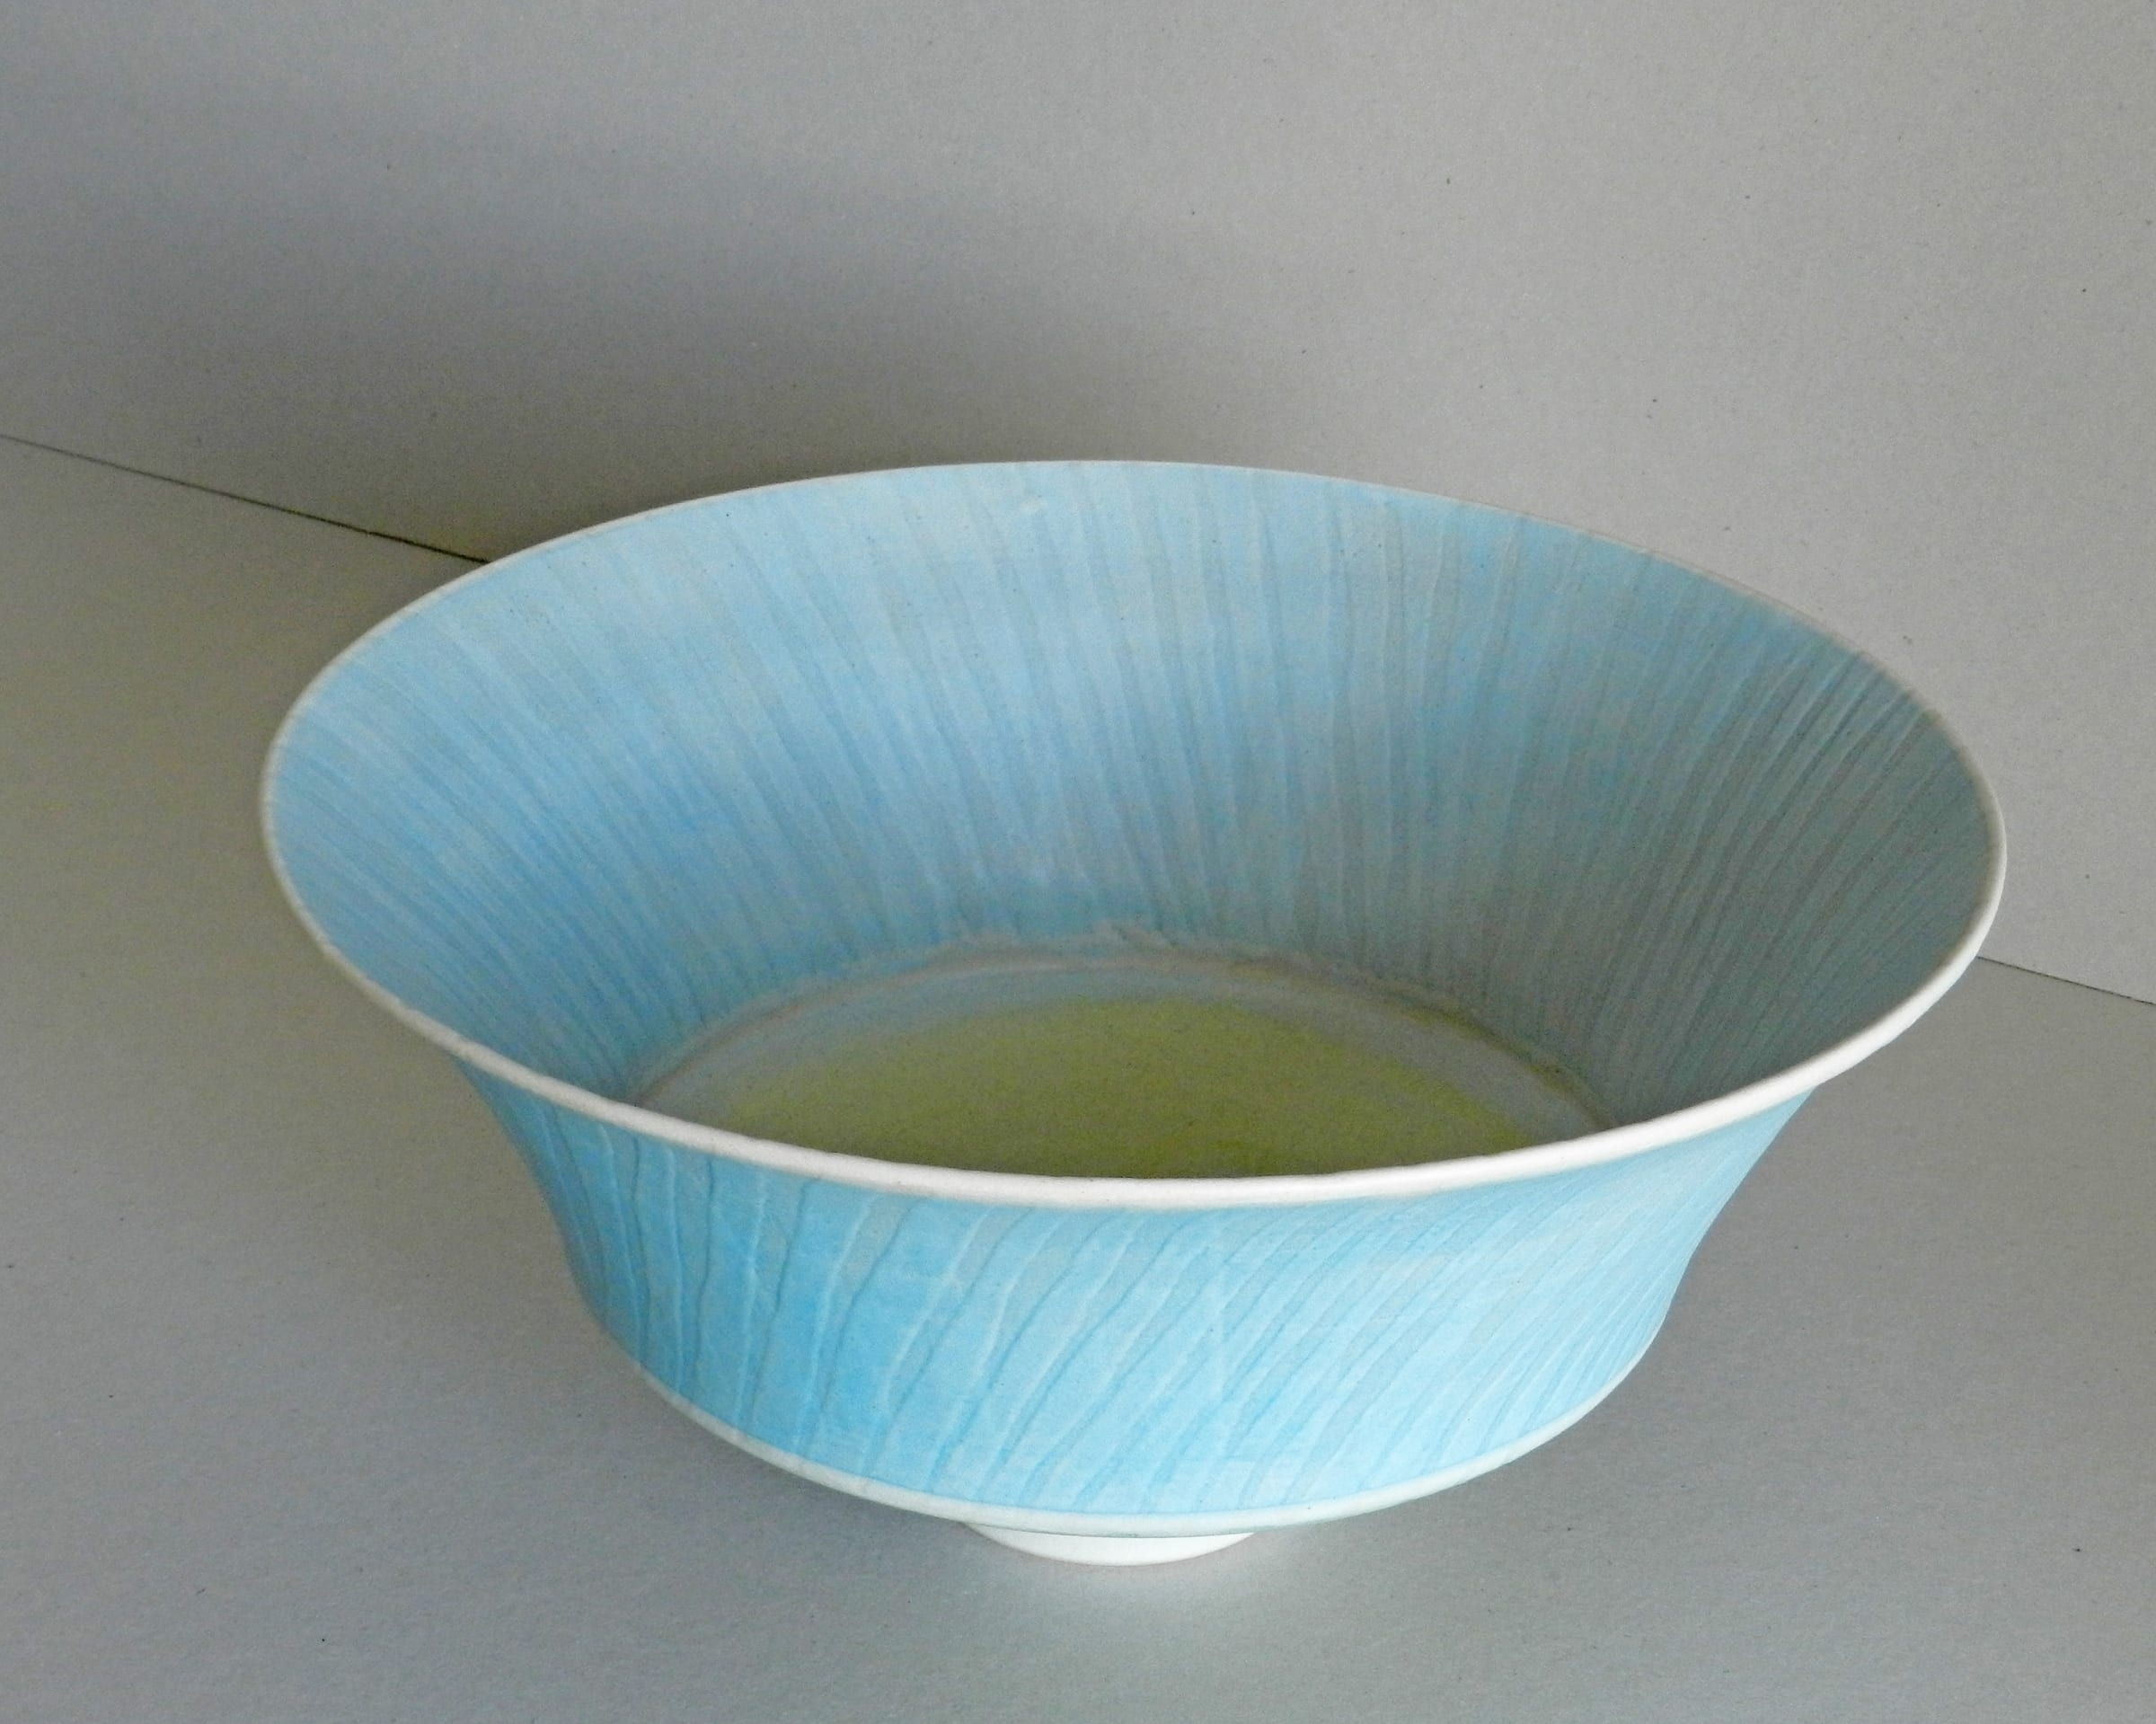 """<span class=""""link fancybox-details-link""""><a href=""""/artists/243-christine-feiler/works/6873-christine-feiler-large-double-rim-bowl-2018/"""">View Detail Page</a></span><div class=""""artist""""><strong>Christine Feiler</strong></div> b. 1948 <div class=""""title""""><em>Large double rim bowl</em>, 2018</div> <div class=""""signed_and_dated"""">Ceramicist mark on base</div> <div class=""""medium"""">Stoneware with enamels</div><div class=""""price"""">£385.00</div><div class=""""copyright_line"""">Copyright The Artist</div>"""